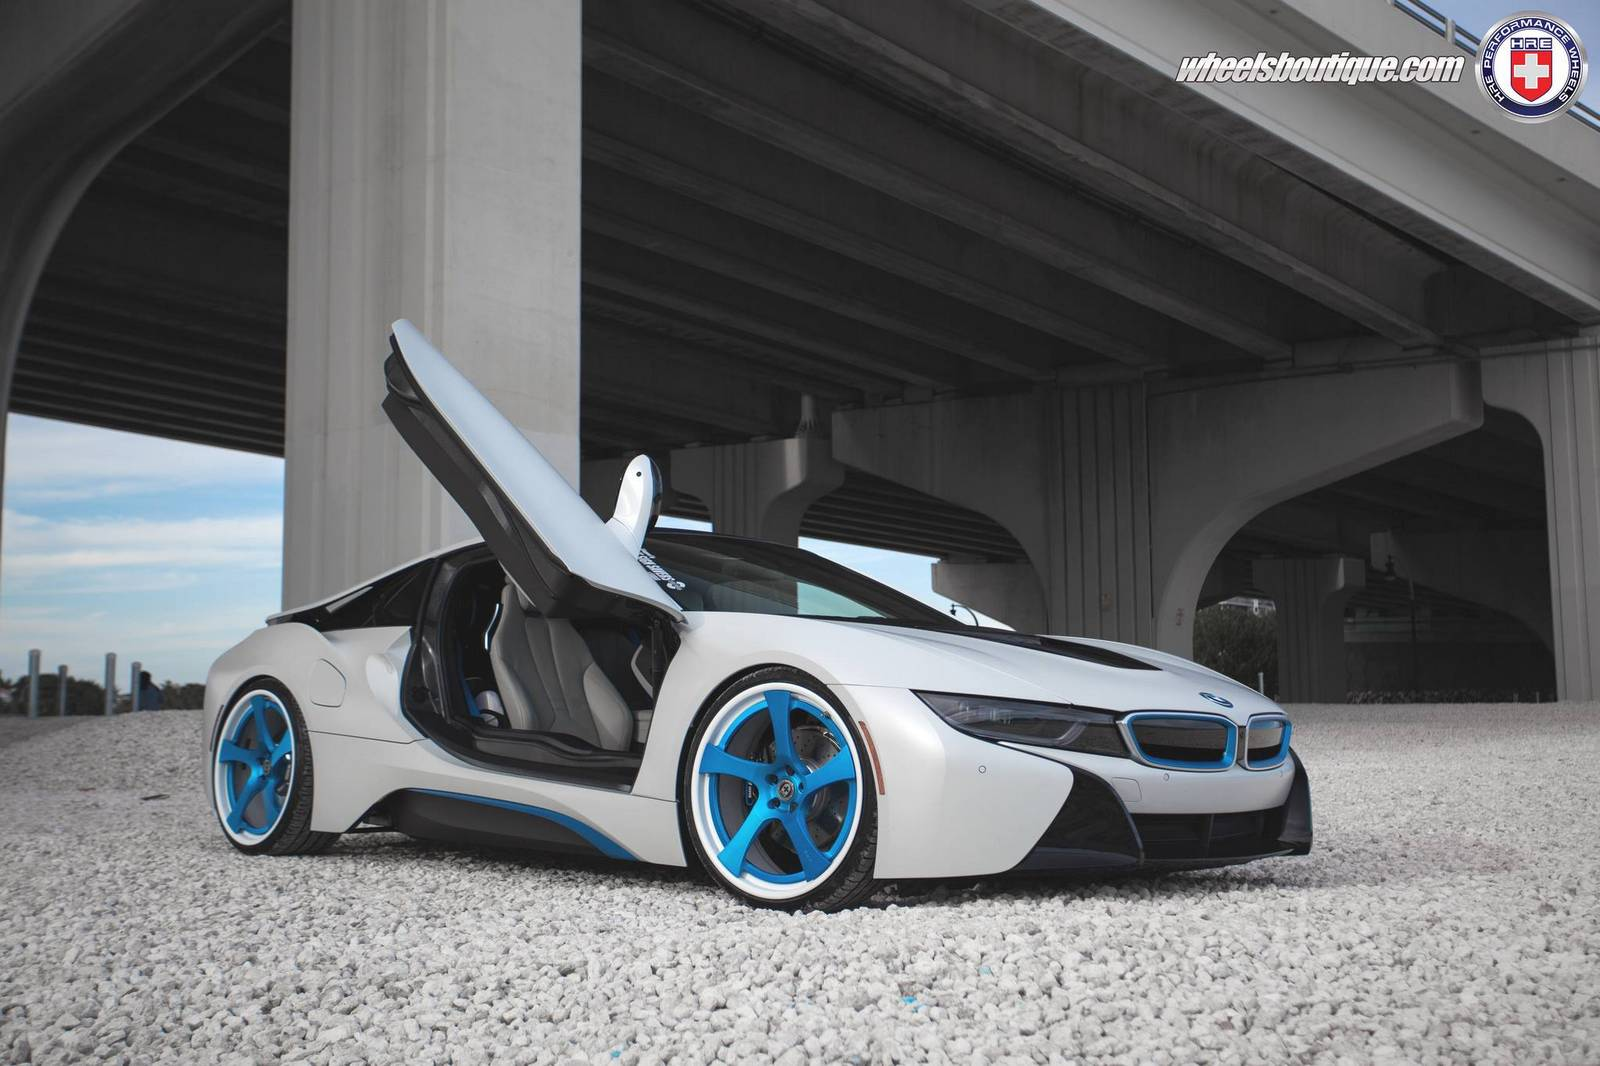 White Bmw I8 Lowered On Blue Hre Wheels Gtspirit